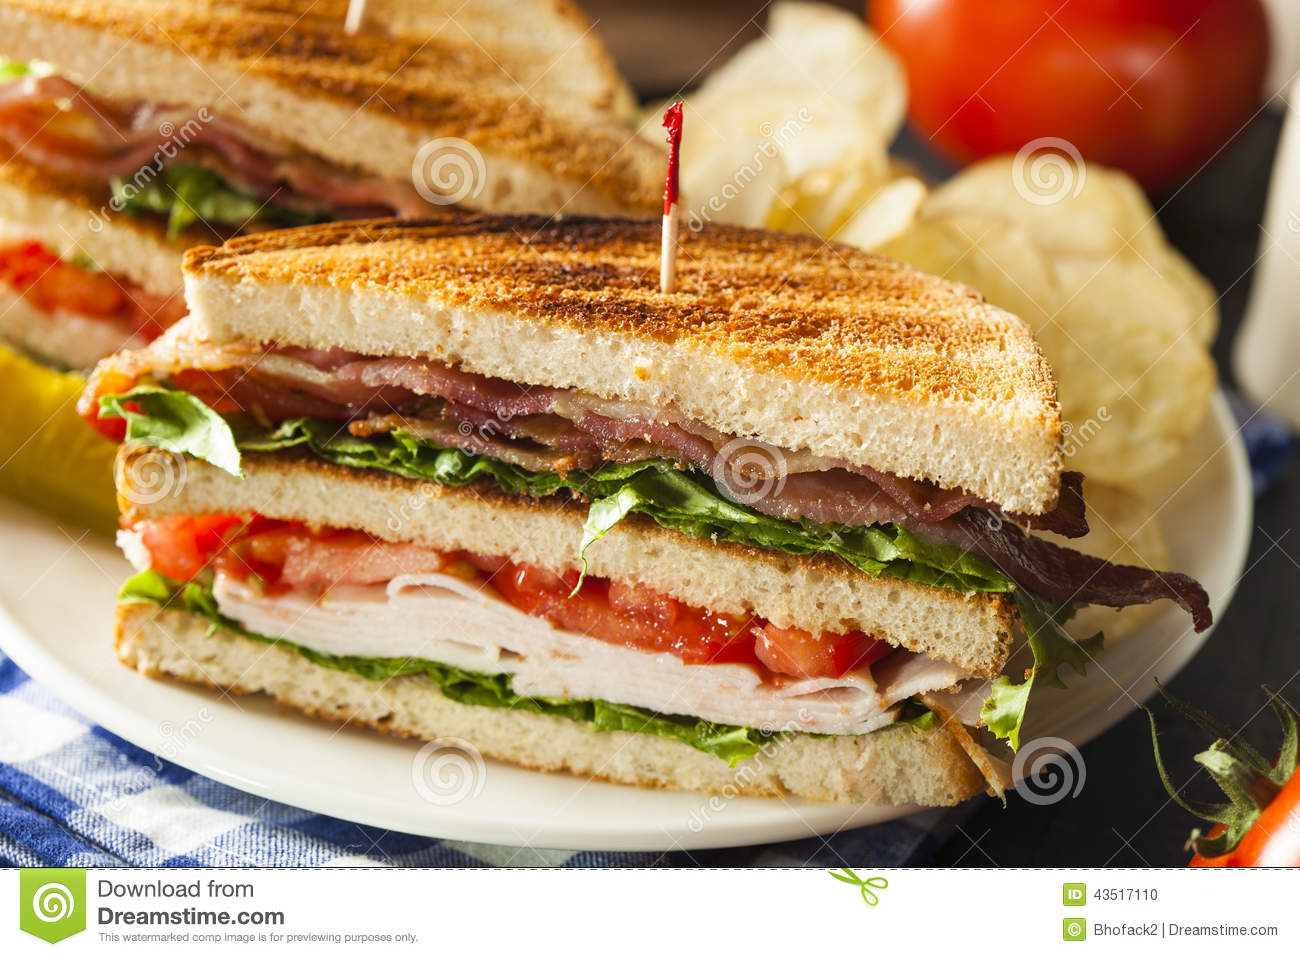 Turkey And Bacon Club Sandwich Stock Photo - Image: 43517110